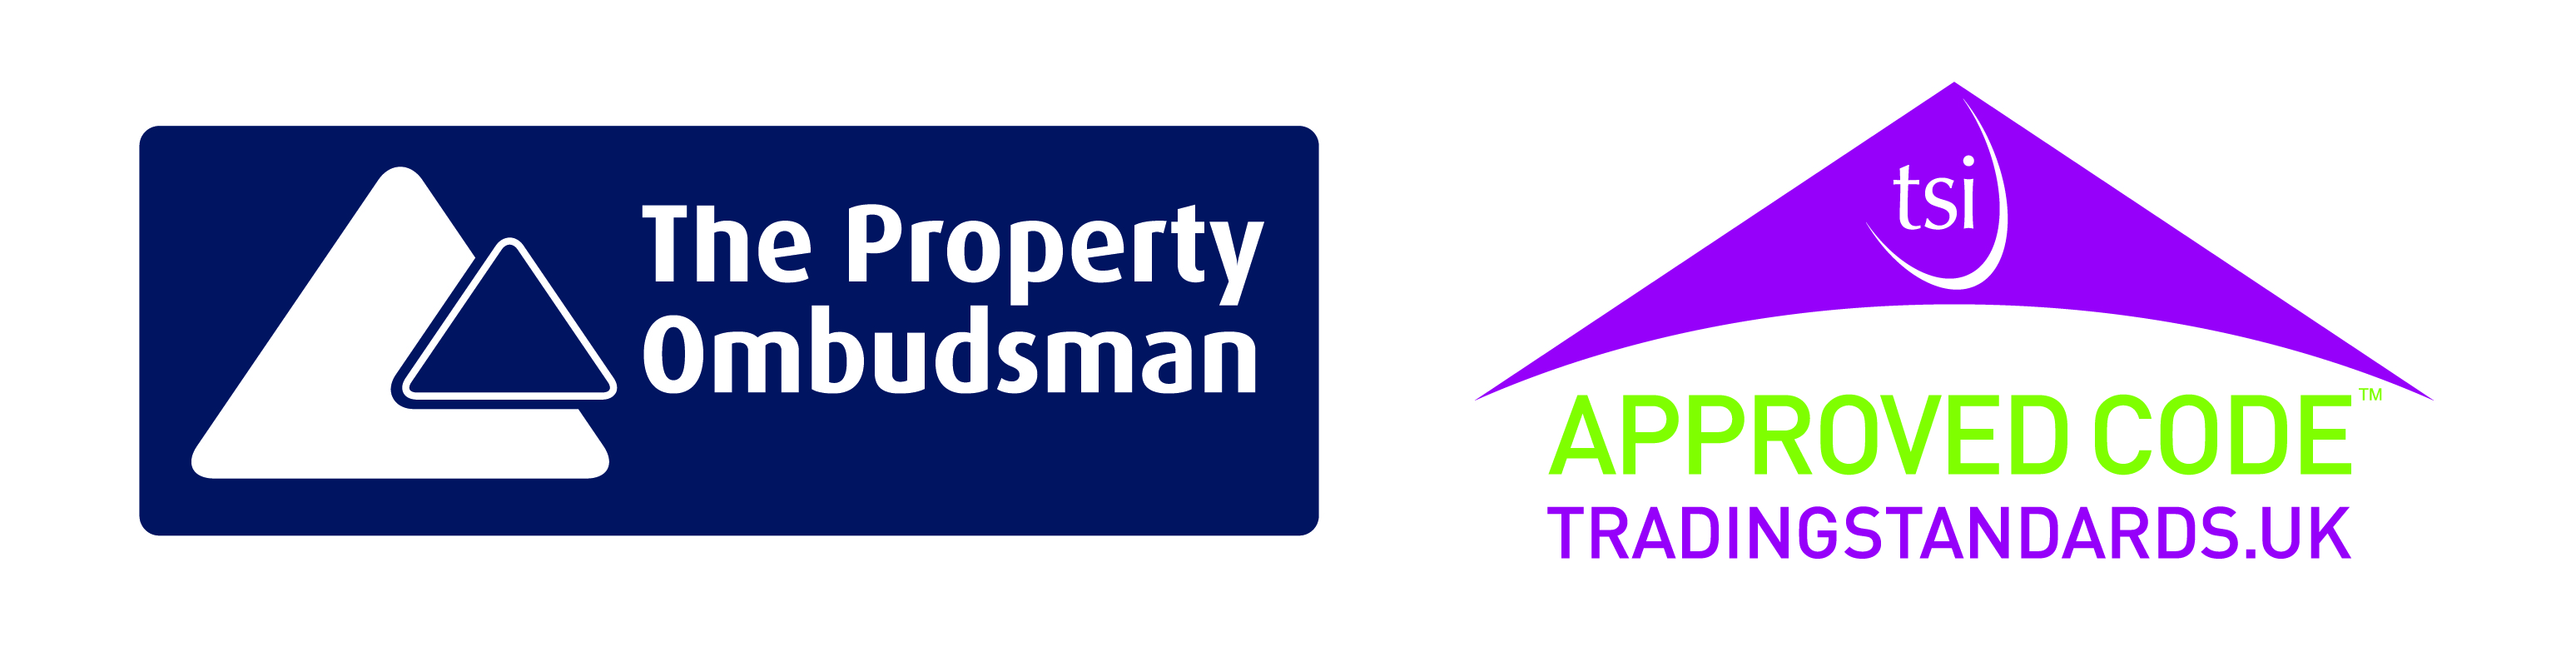 The official online resource for the UK Ombudsman Scheme for Estate Agents.